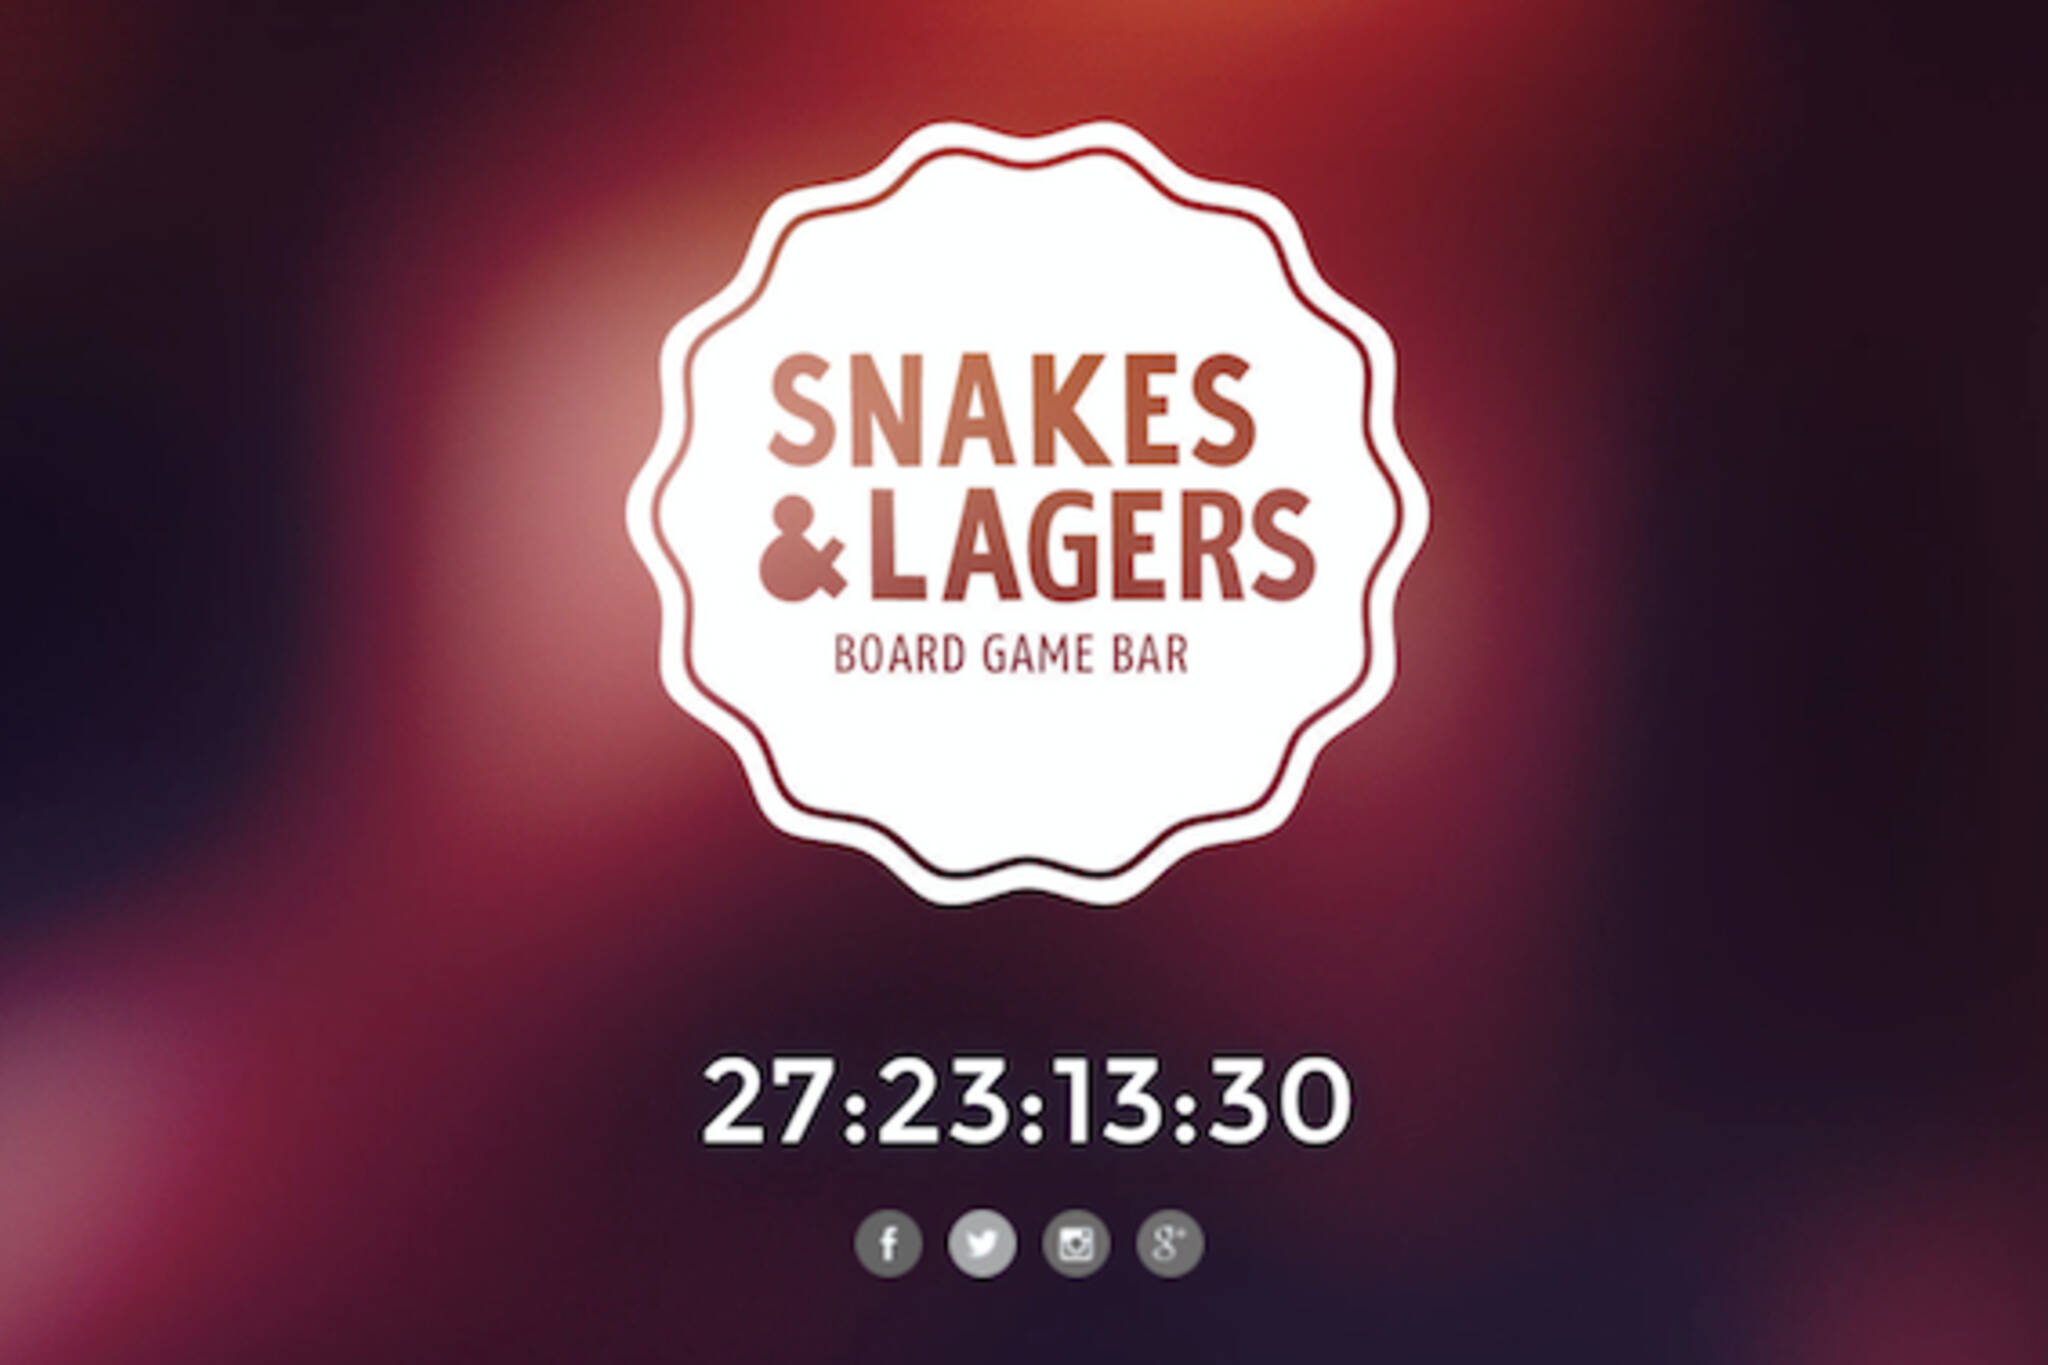 Snakes and Lagers